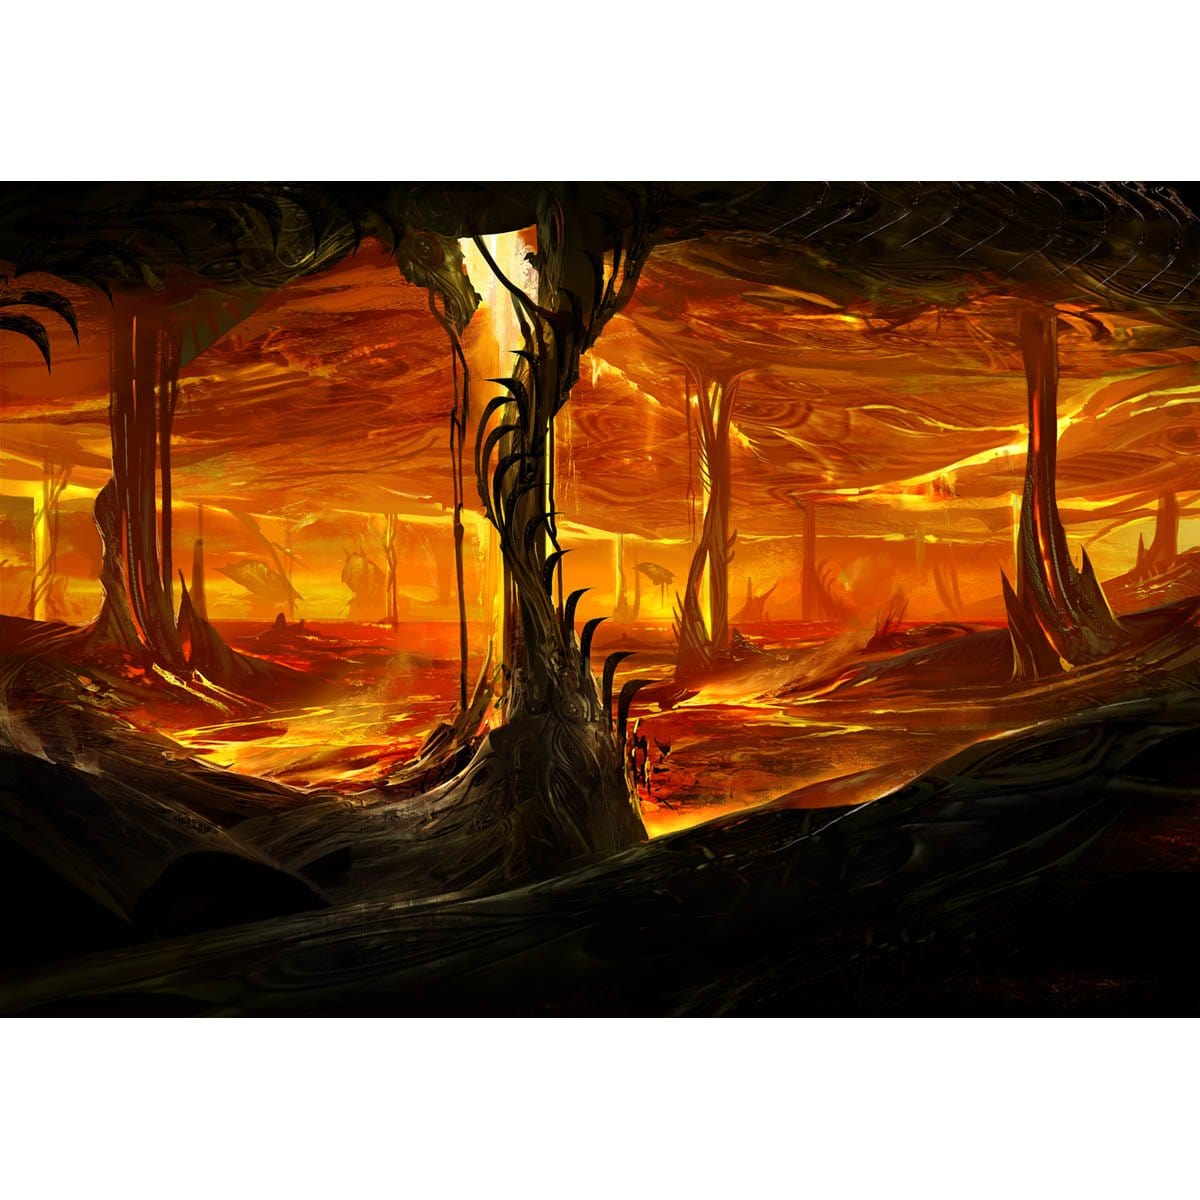 Furnace Layer Print - Print - Original Magic Art - Accessories for Magic the Gathering and other card games